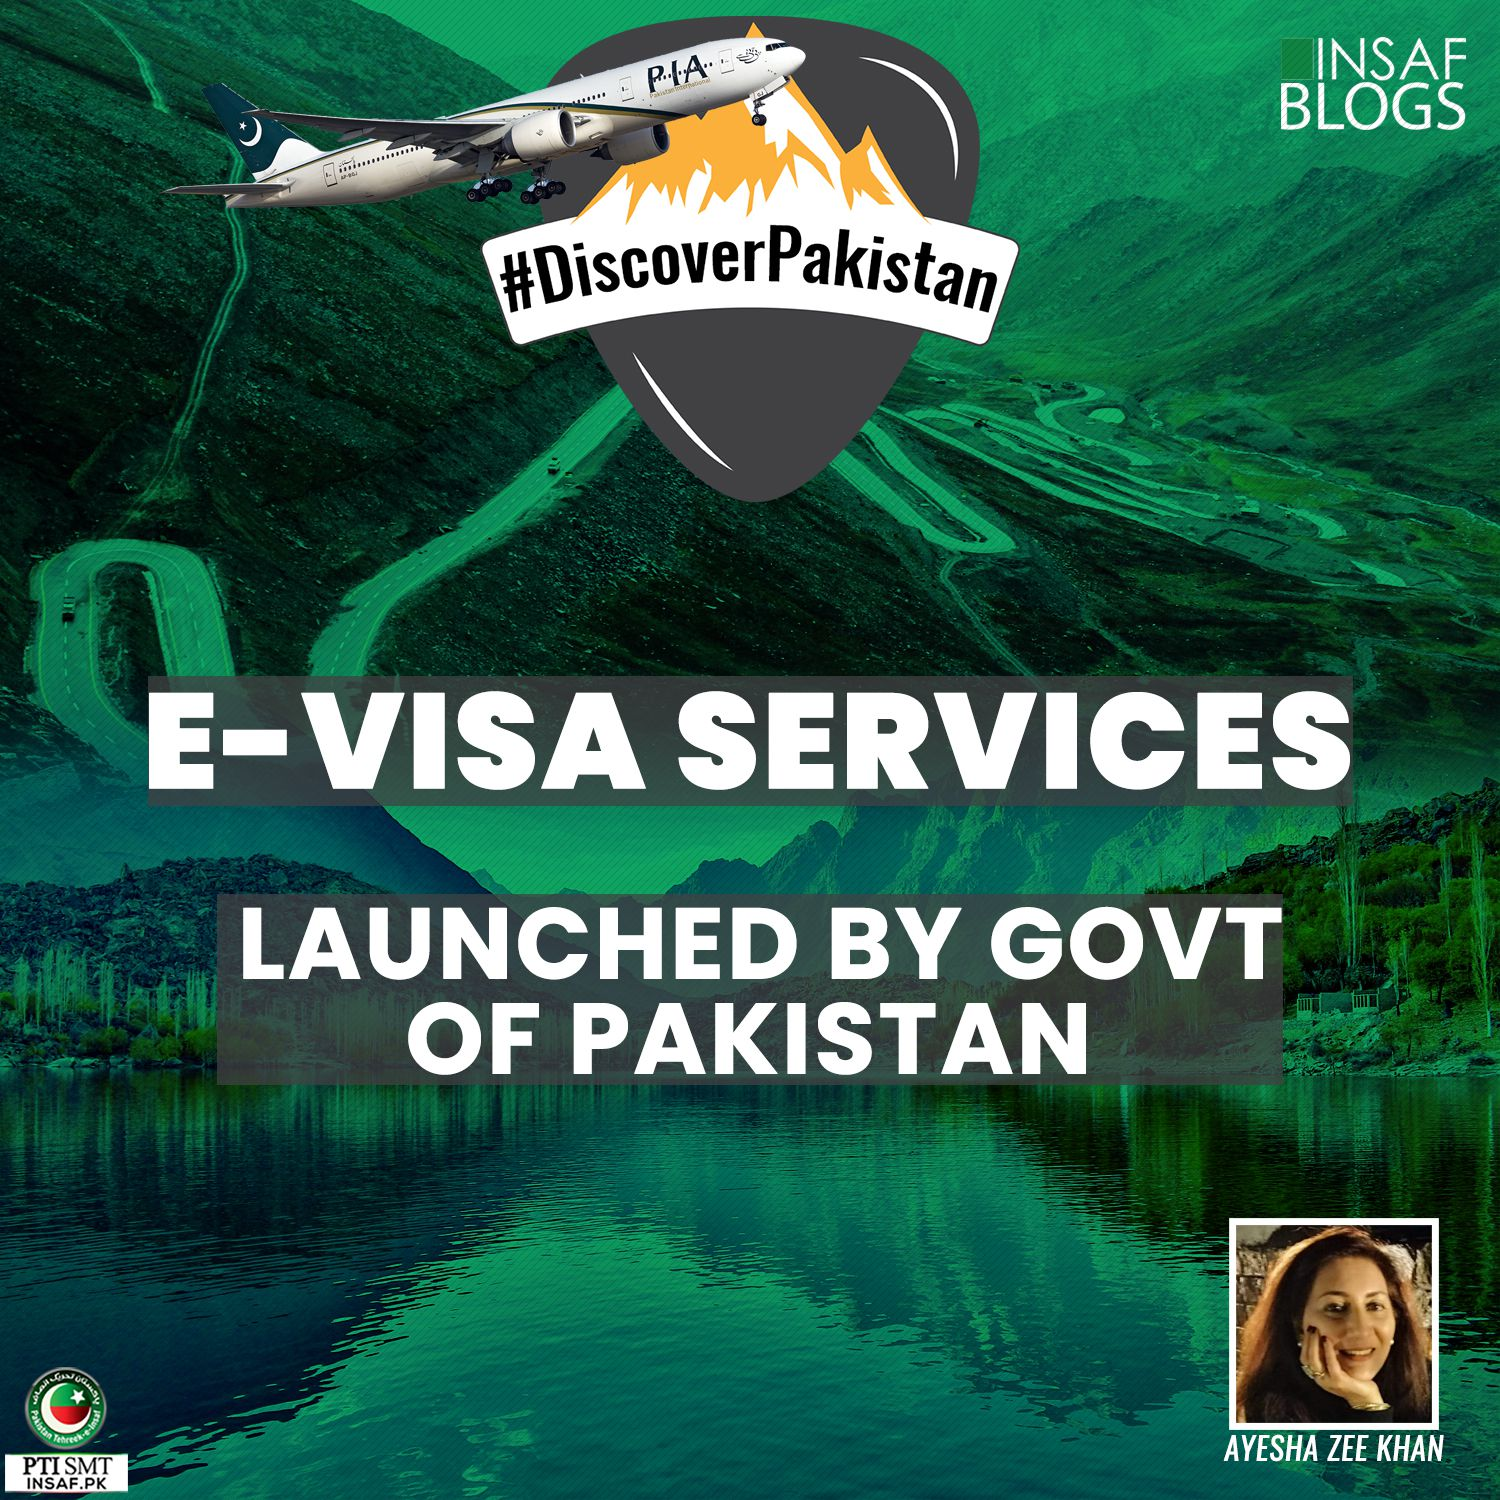 eVisa-services-insaf-blog